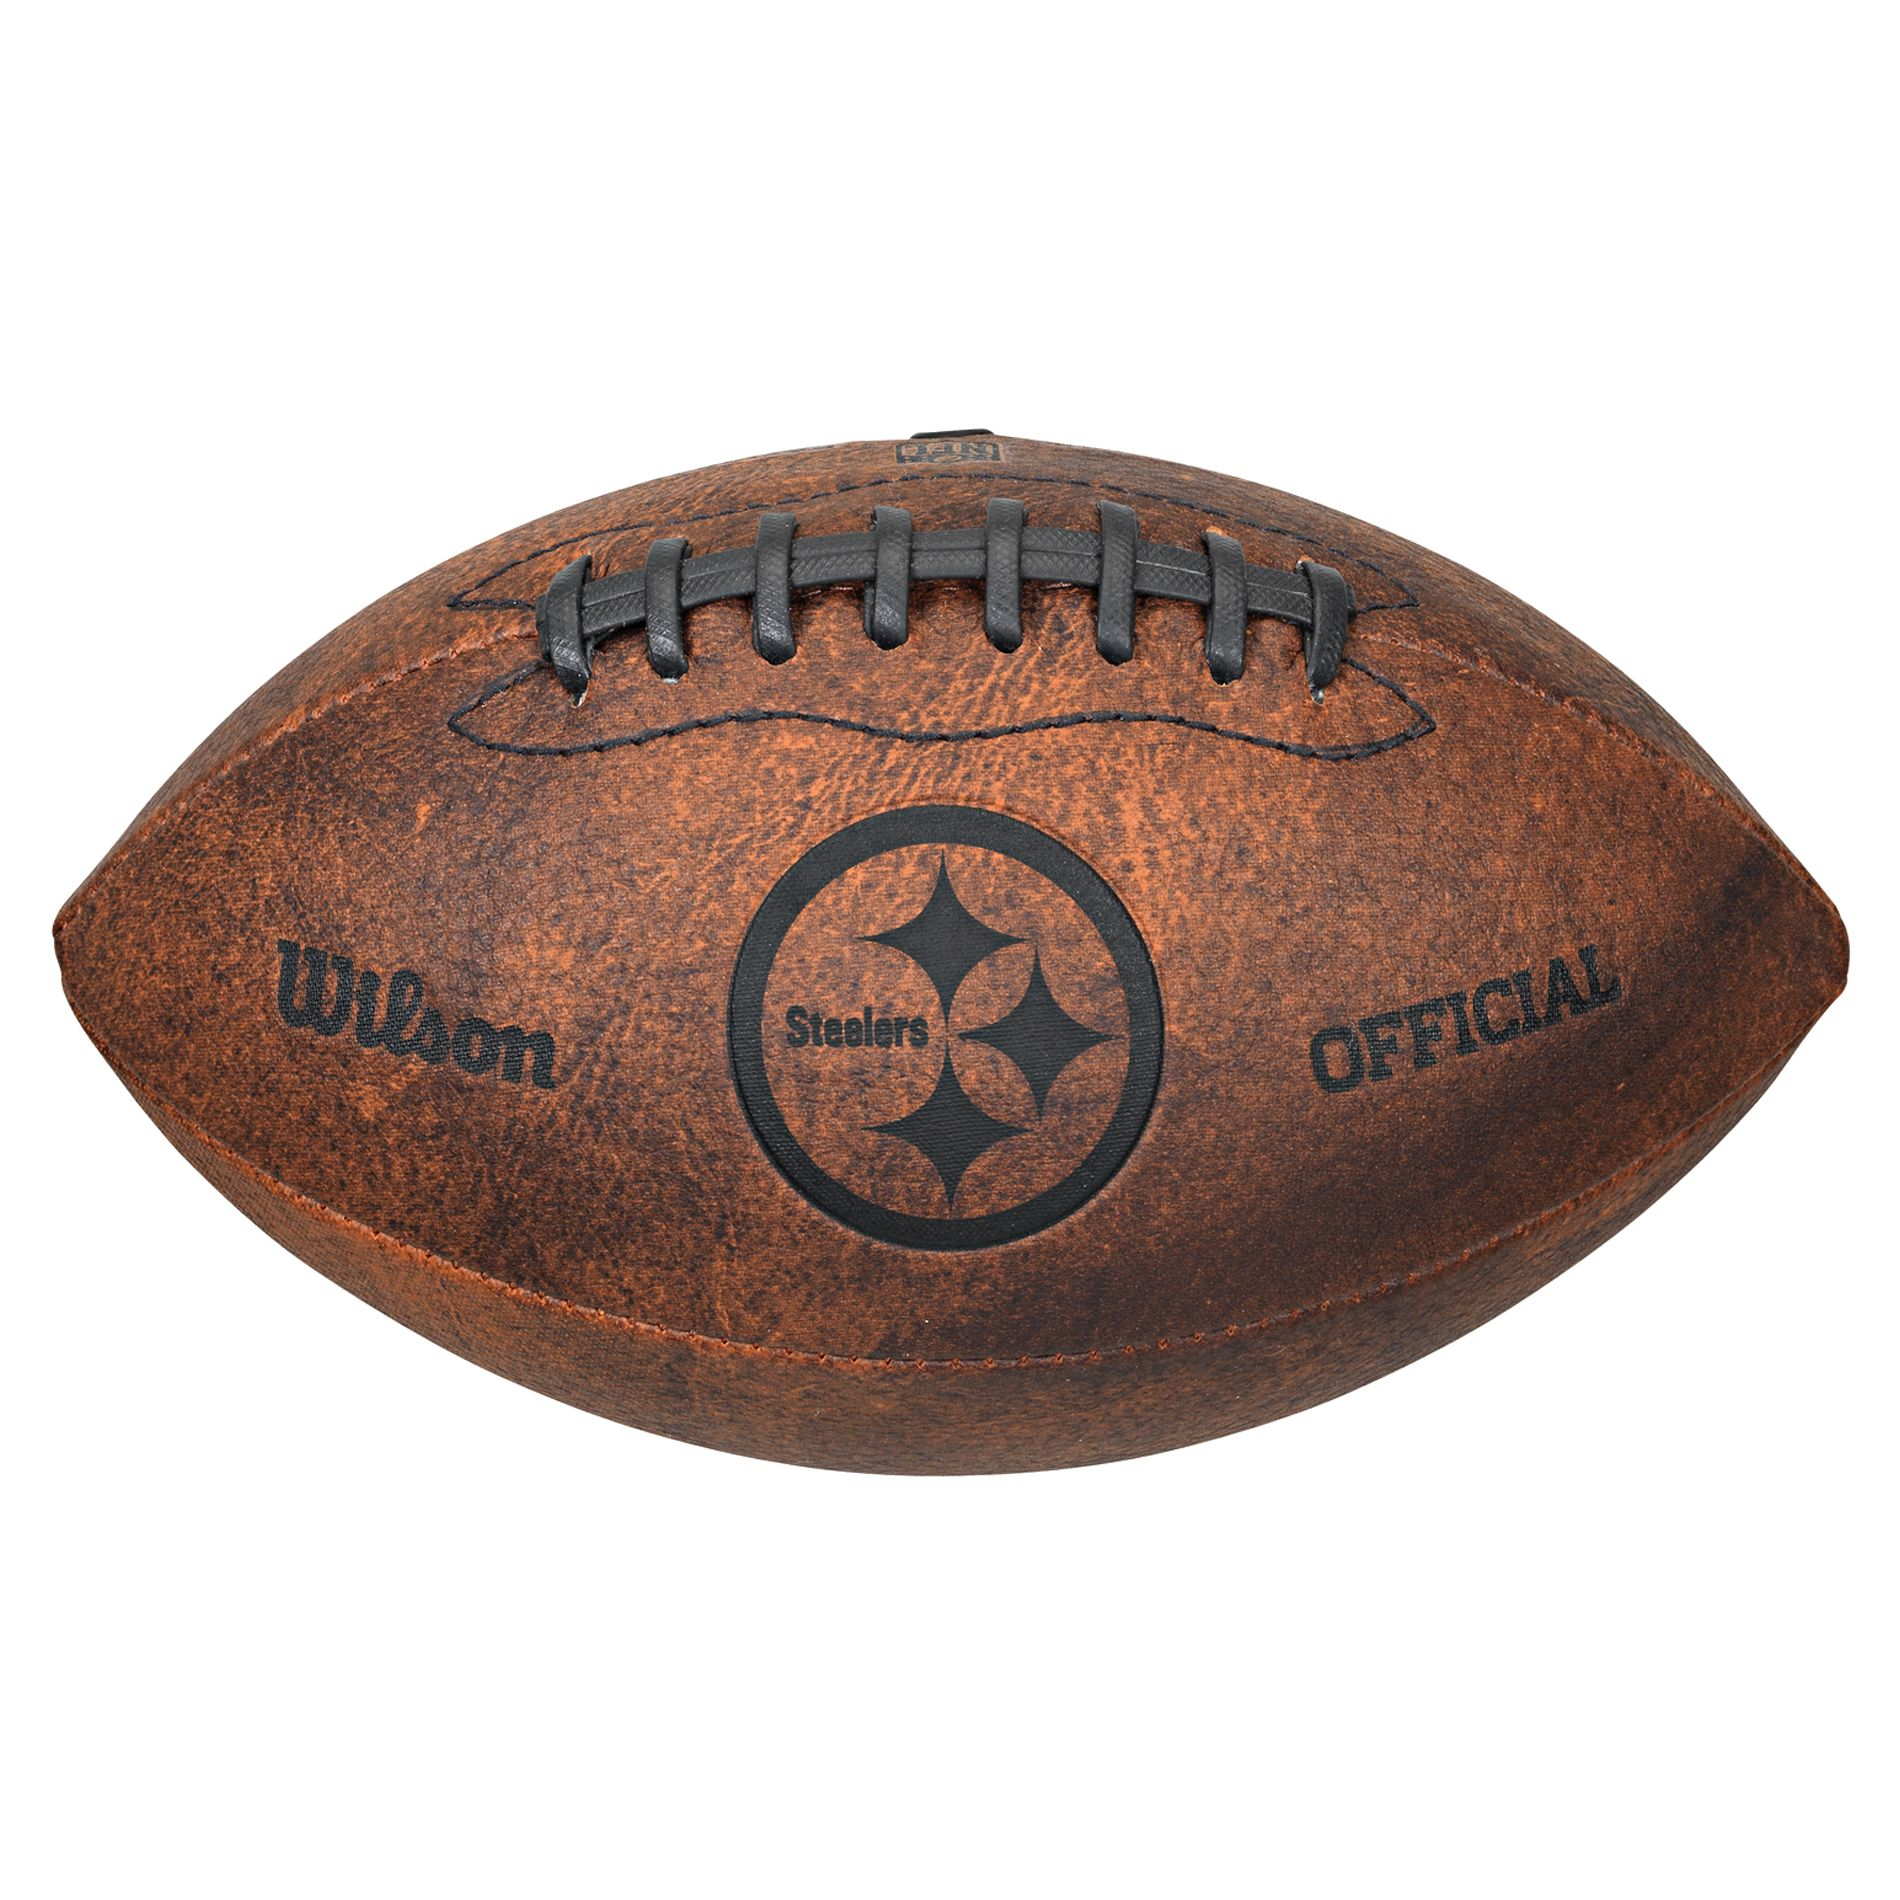 16aced11 Wilson Pittsburgh Steelers 9-inch Throwback Football, Size: Large ...